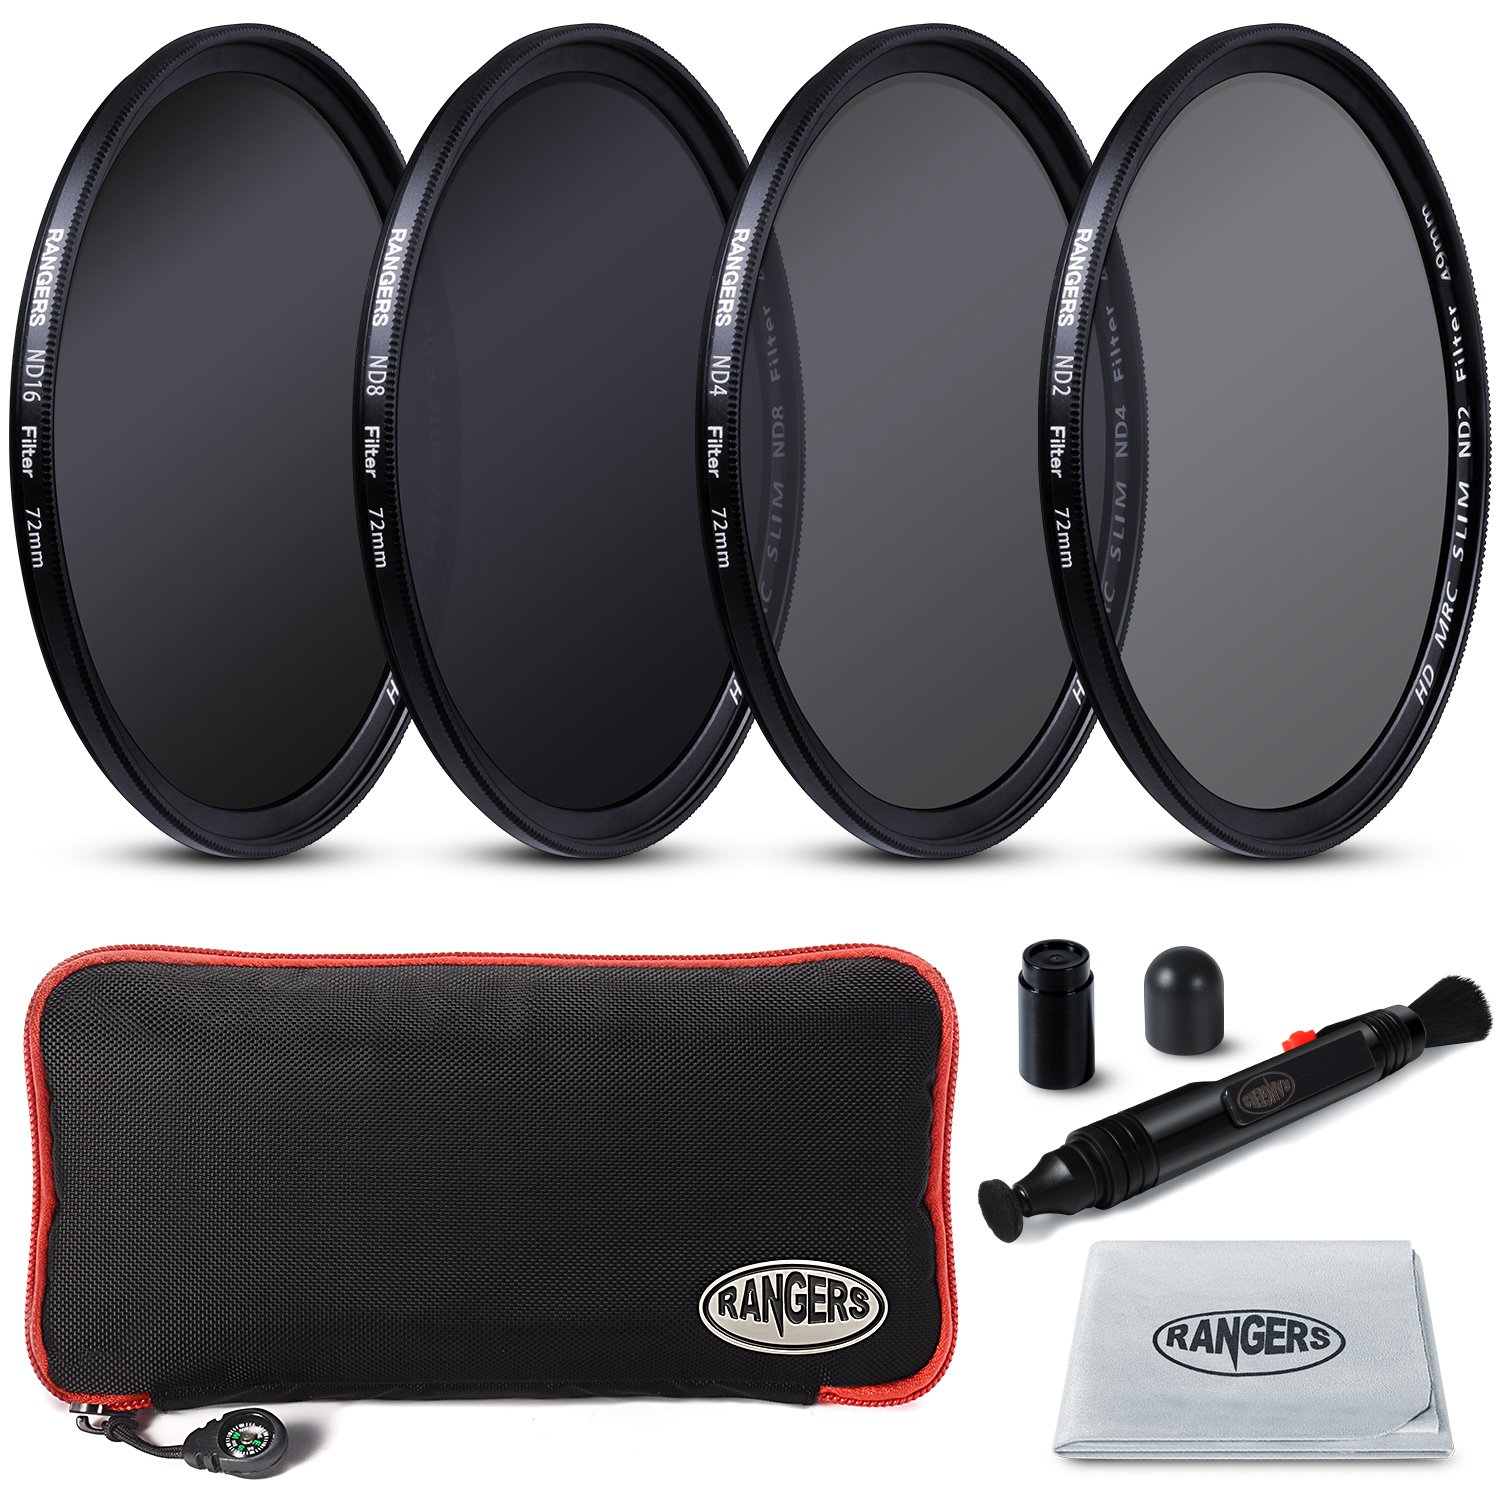 2mm Ultrathin, Rangers 72mm Full ND2, ND4, ND8, ND16 Neutral Density Filters and Carrying Case + Lens Cleaning Cloth + Lens Cleaning Pen, without vignetting by Rangers